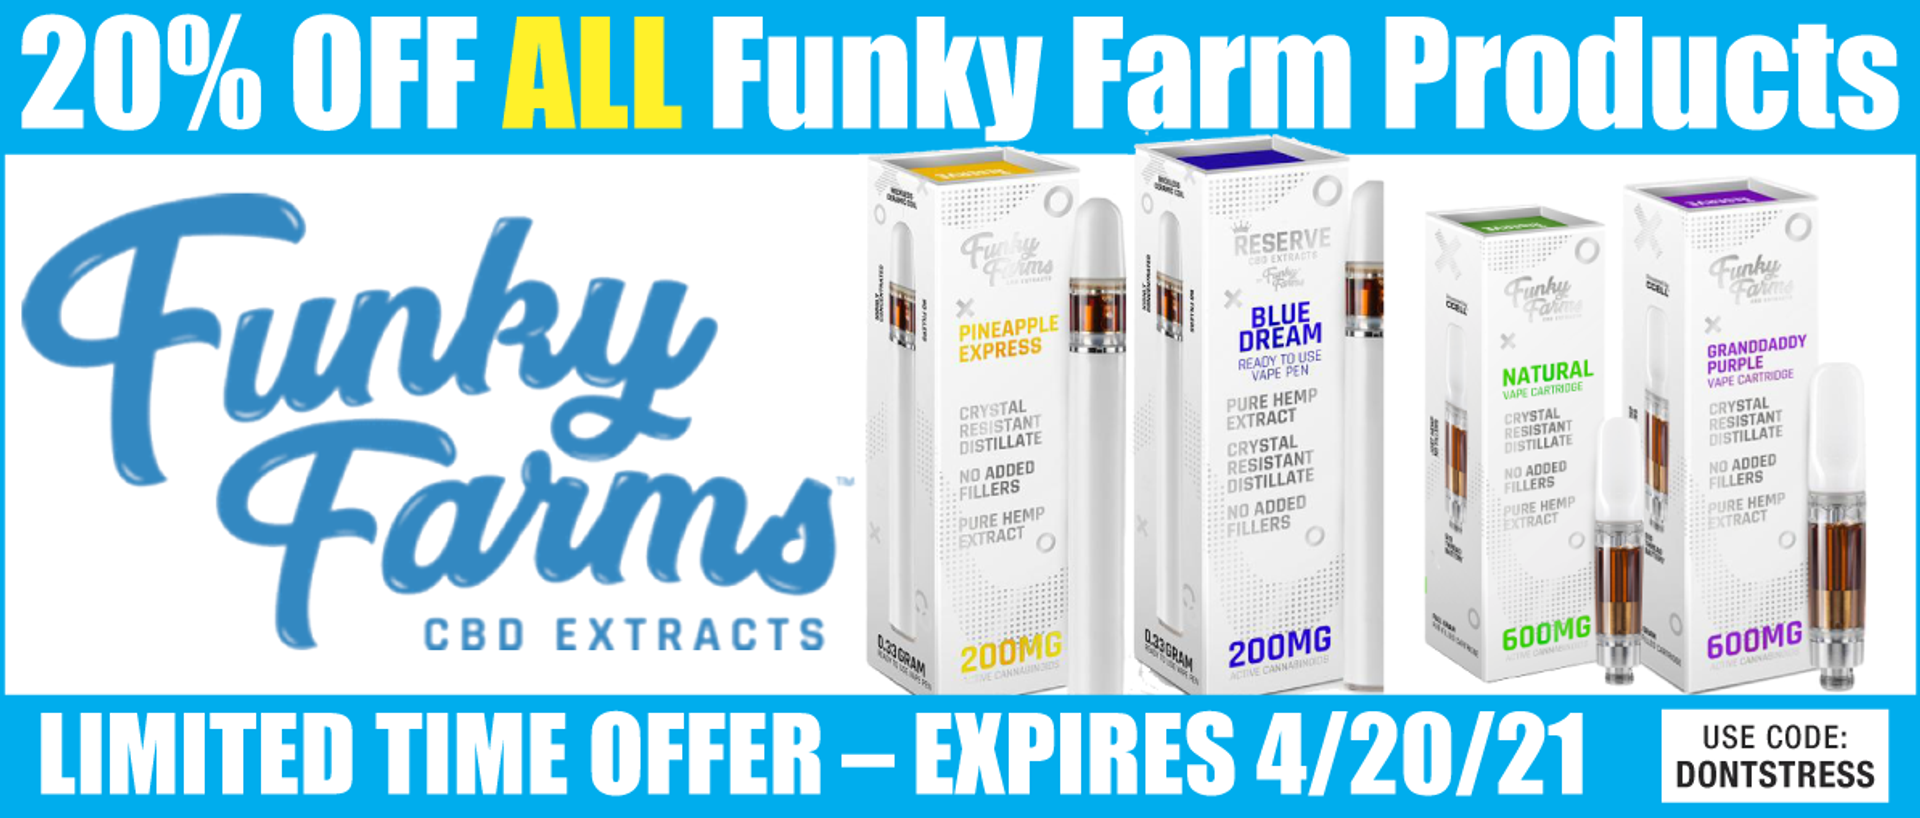 The Funky Farms family and Strategic Partnership with CBDResellers.com is dedicated to pushing industry standards to new heights by delivering compelling new products you won't find anywhere else. CBDResellers.com | Real CBD. Simplified.©️